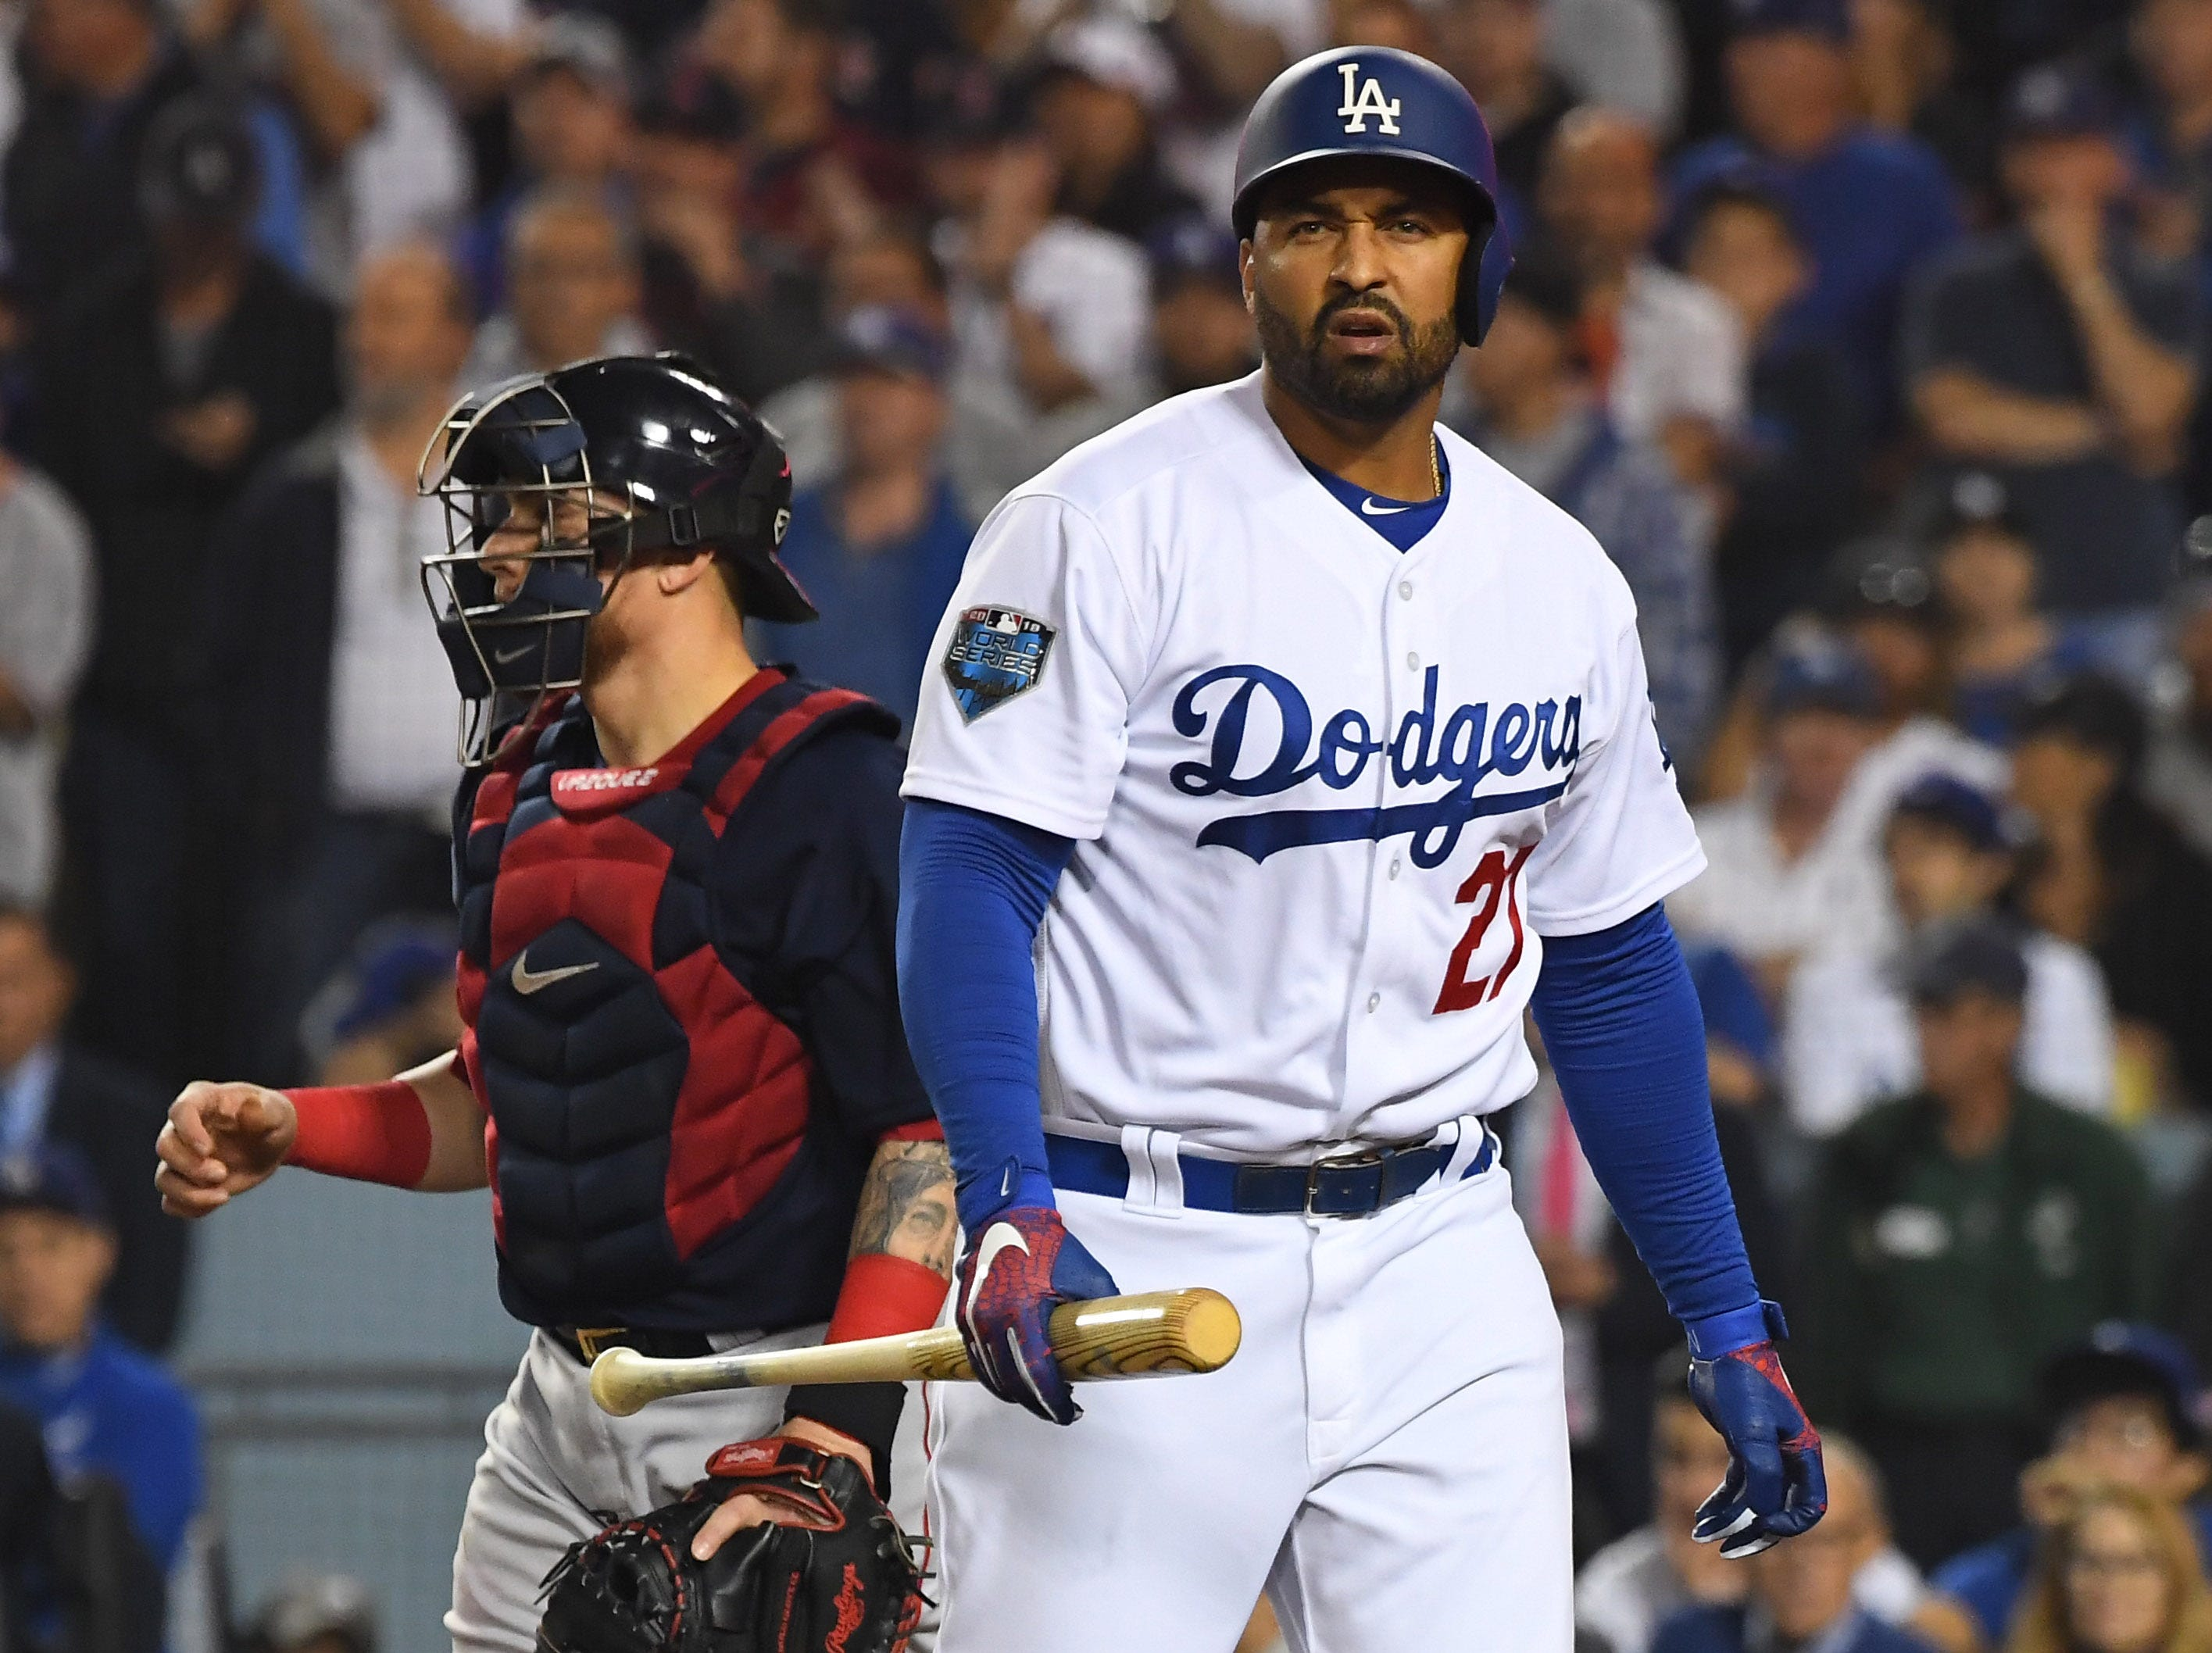 Game 5 at Dodger Stadium: Matt Kemp reacts after striking out in the eighth inning.